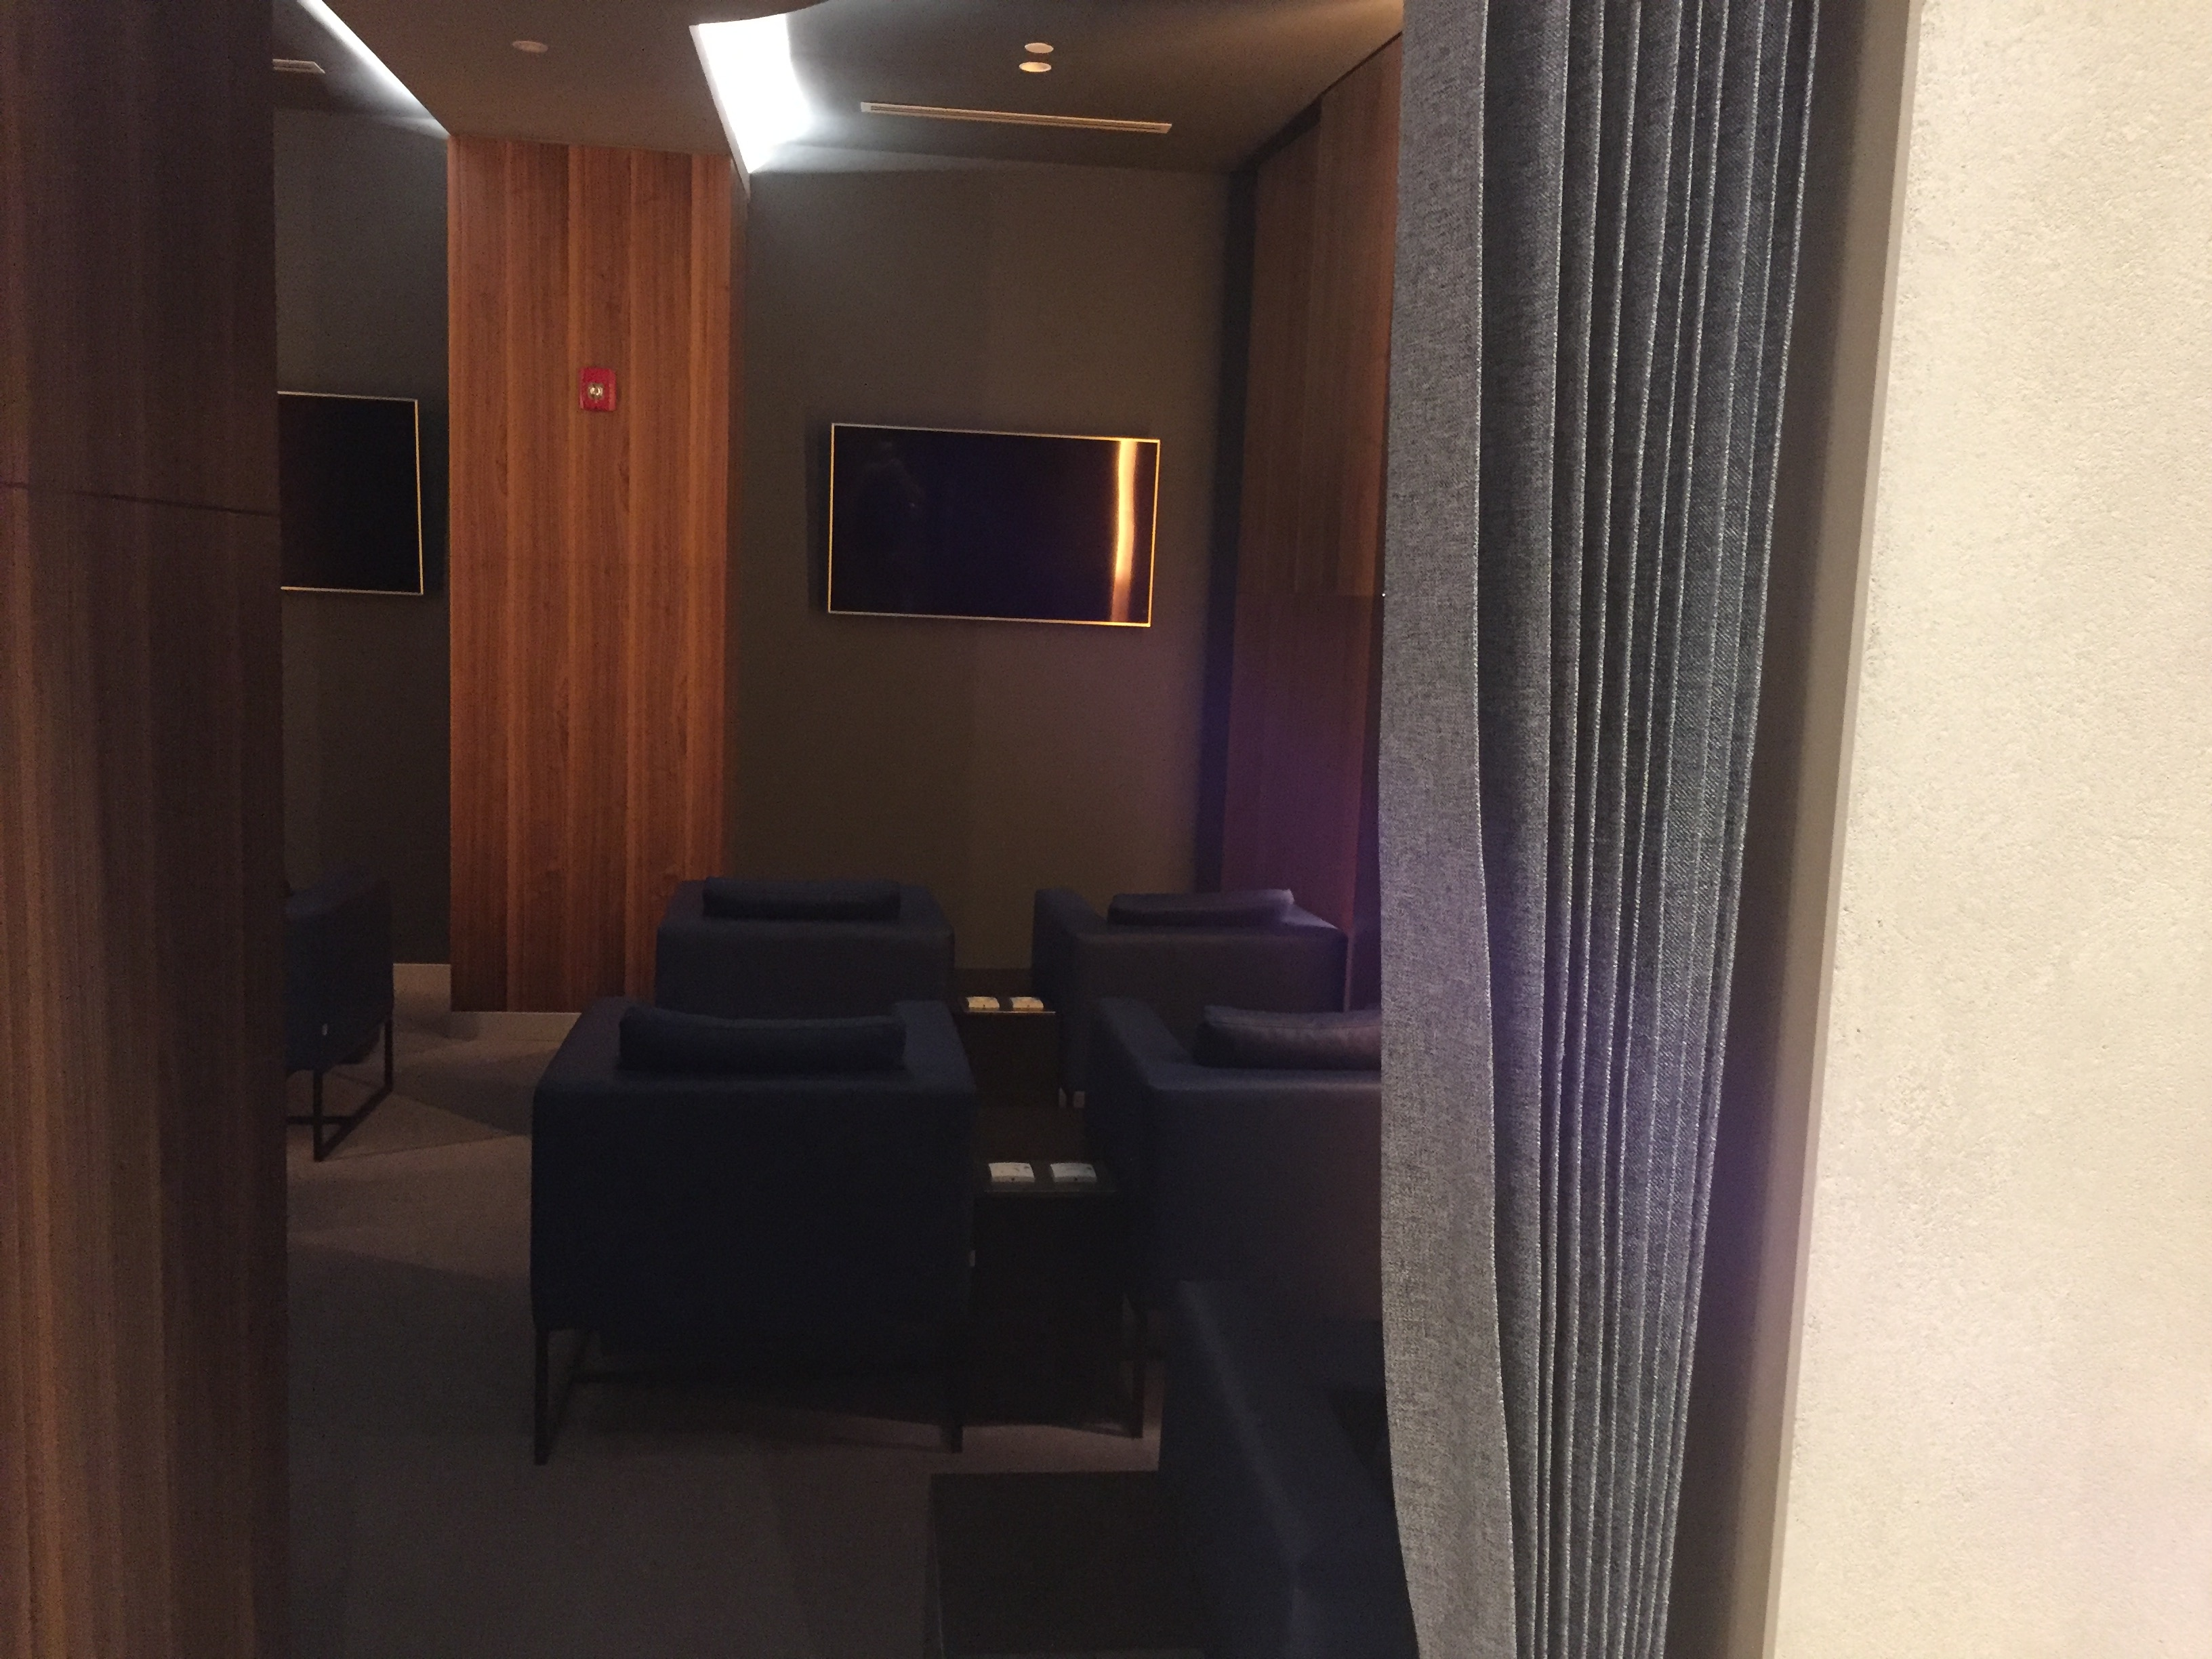 Home theatre lounge | The Primeclass Lounge Muscat